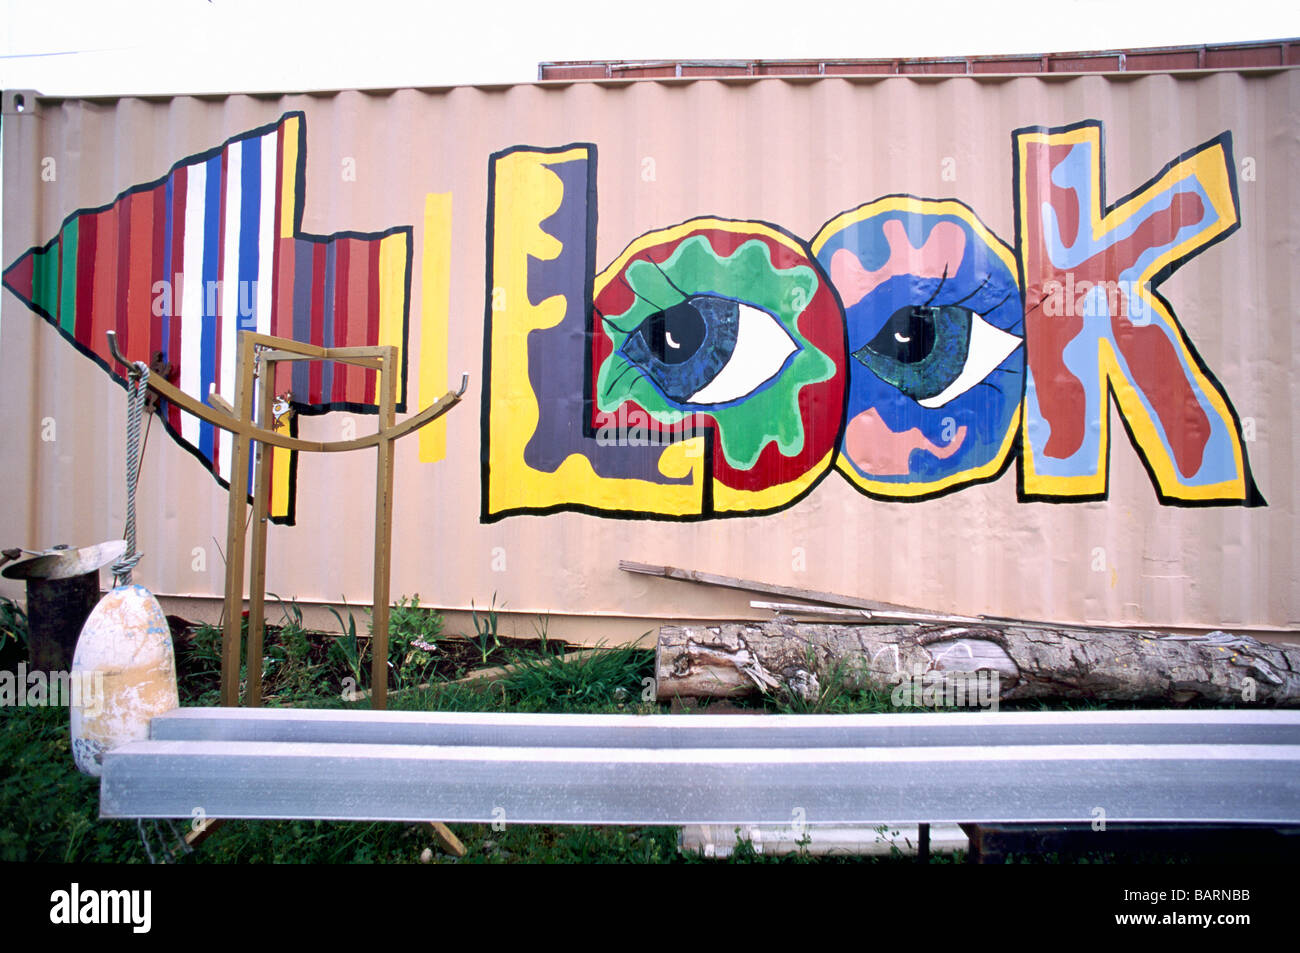 Colorful look graffiti art information sign with arrow pointing in left direction painted on exterior side